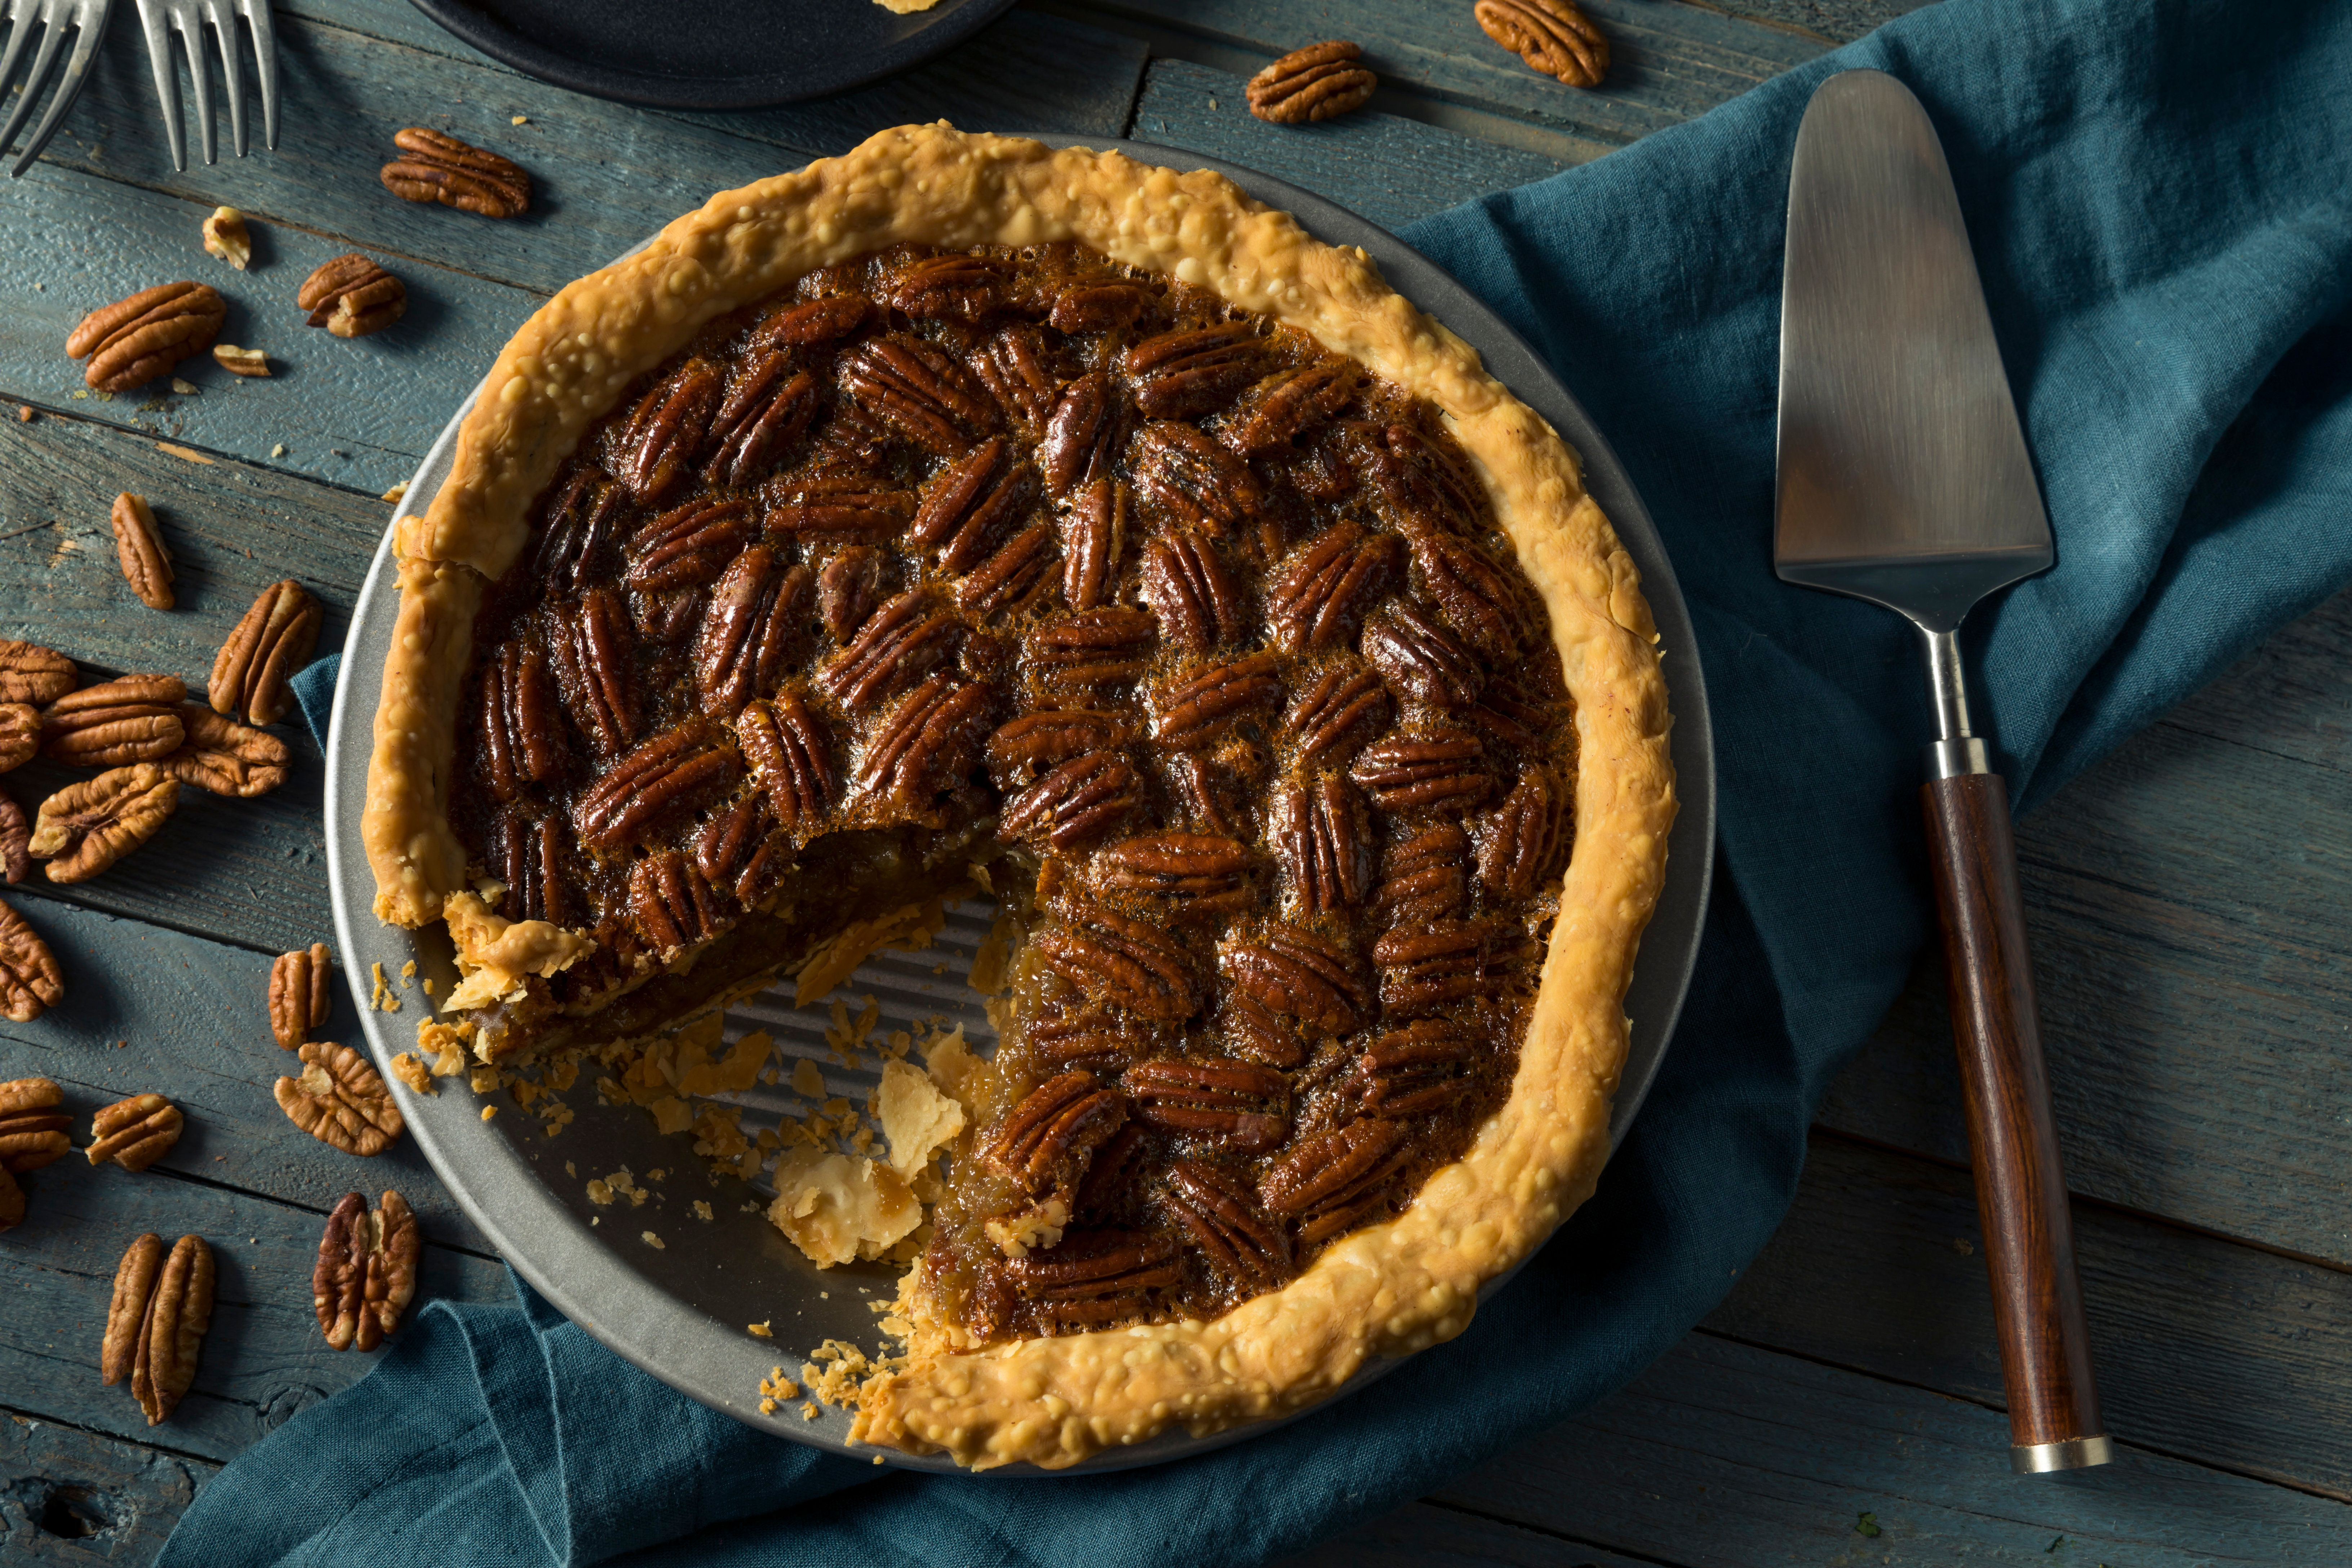 Pecan pie is a Thanksgiving standard in the South.